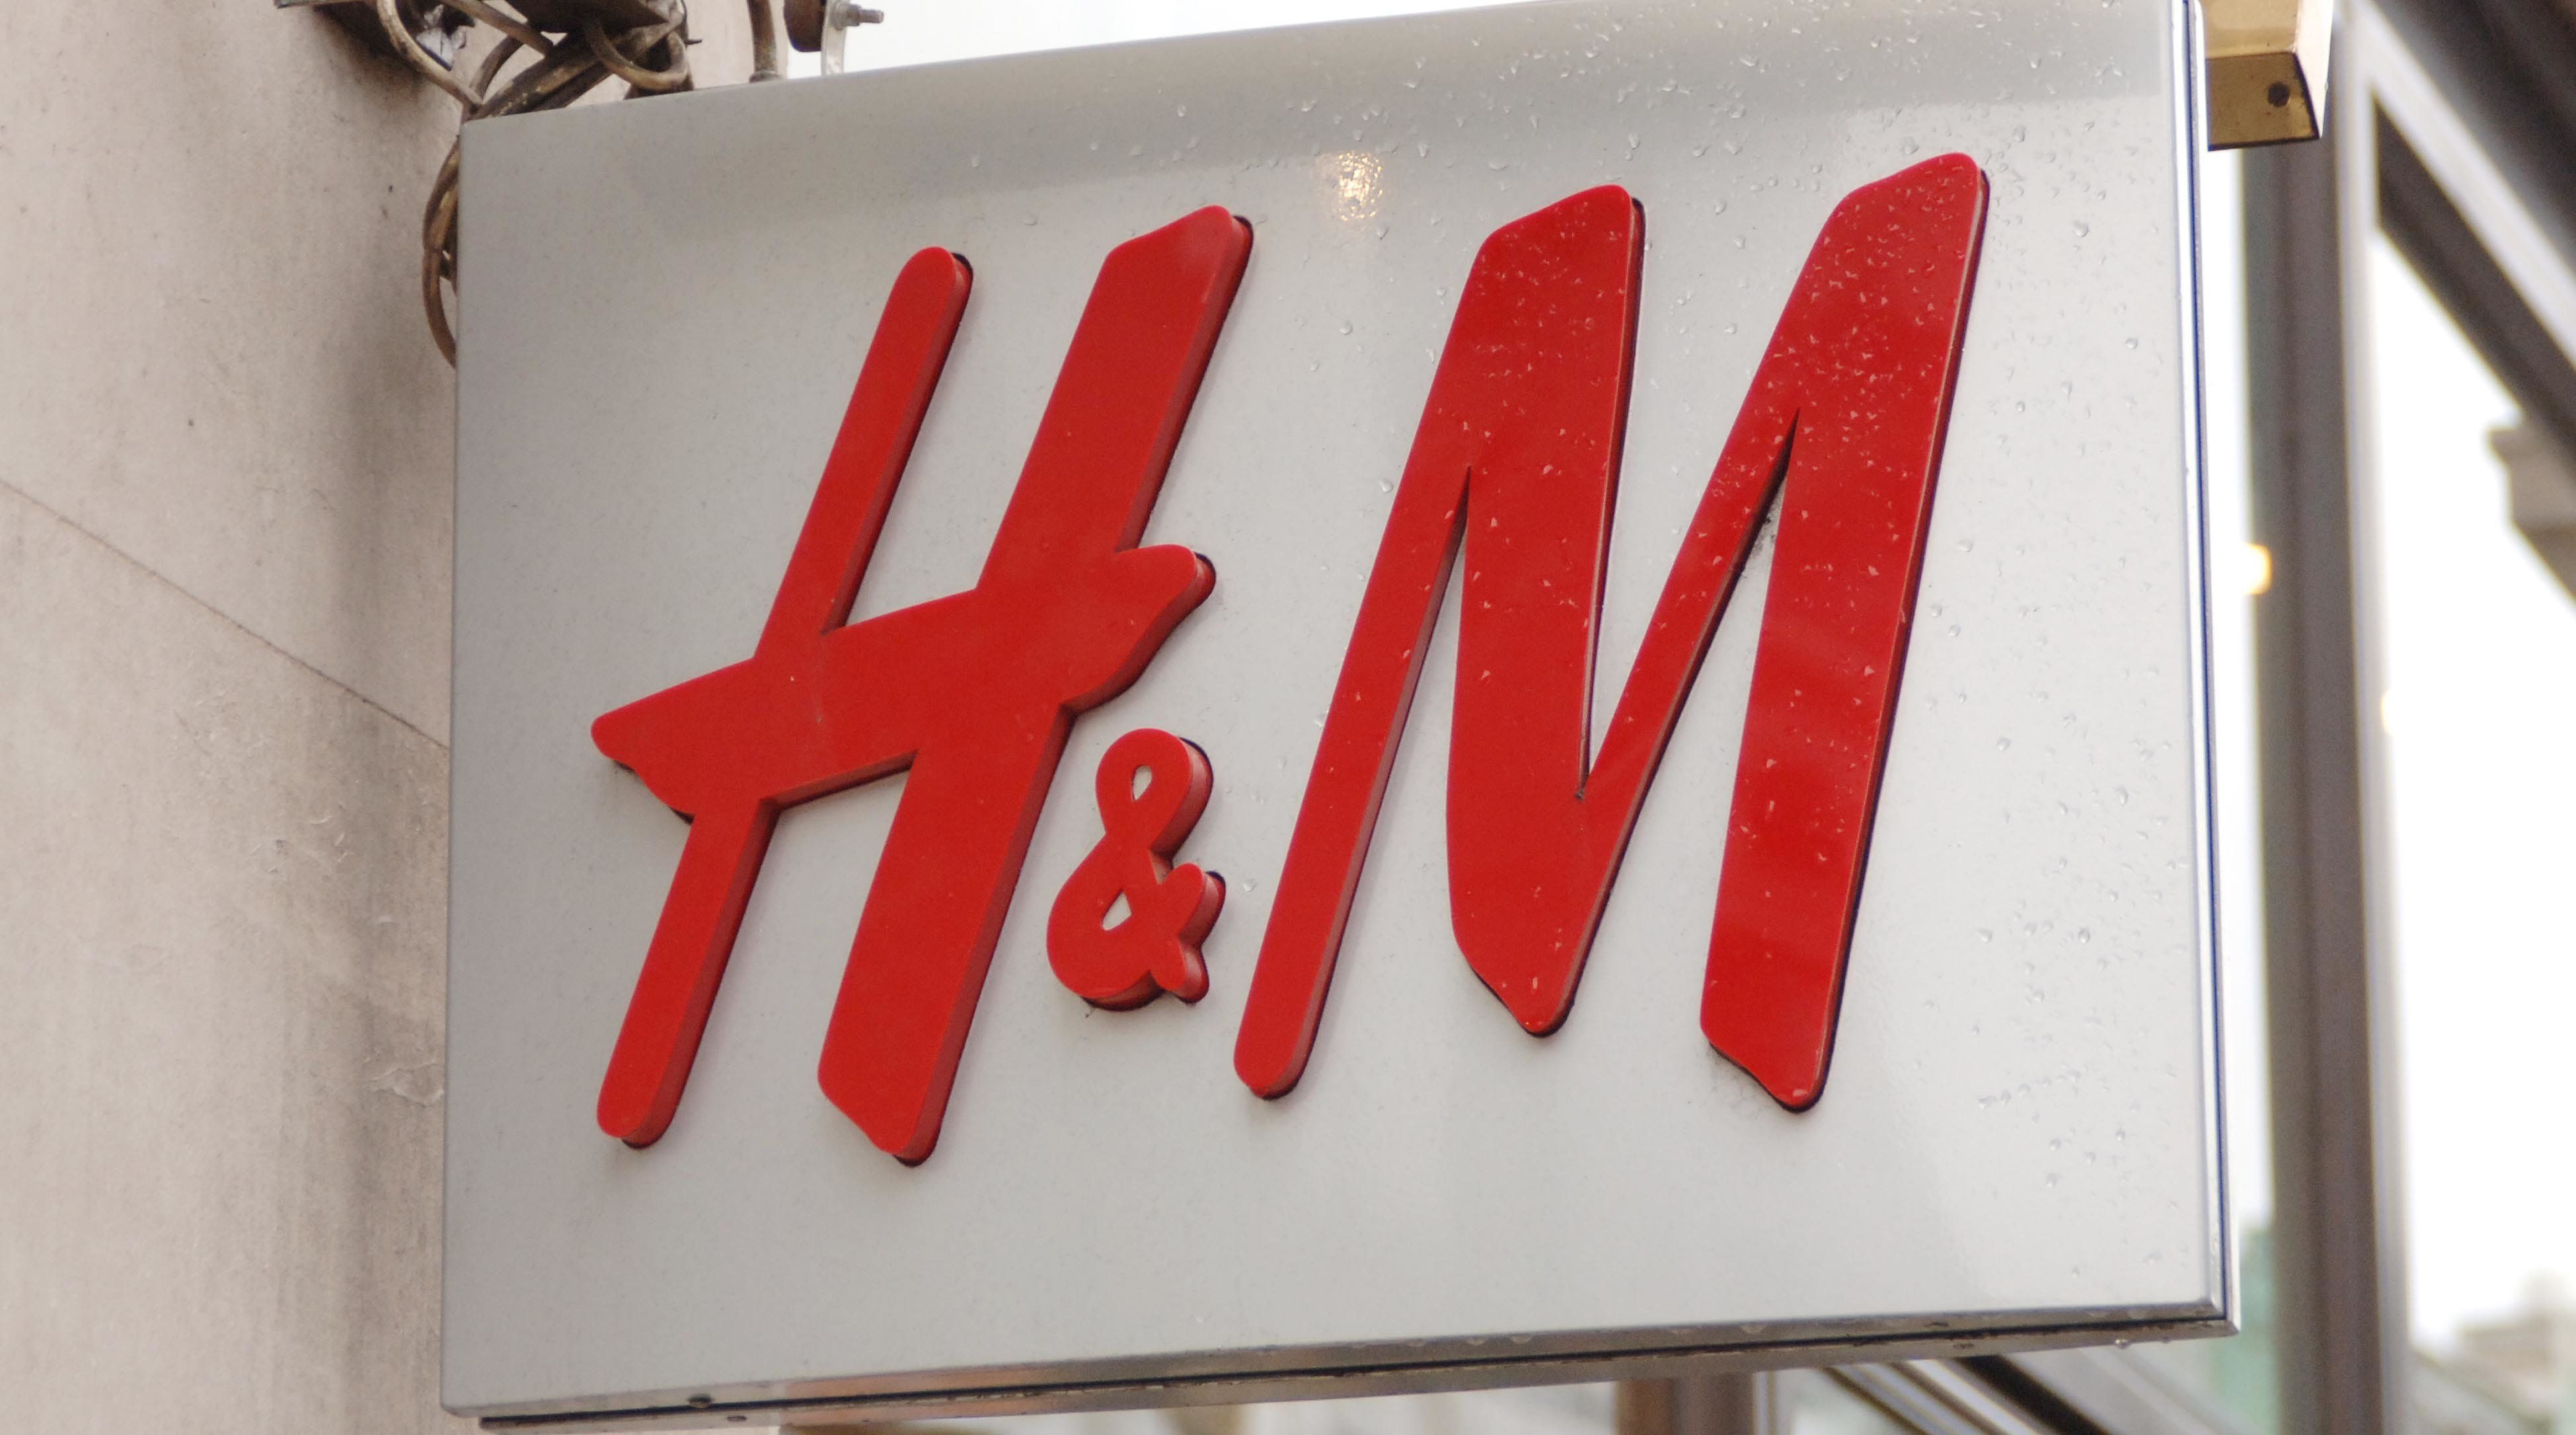 H&M Foundation To Donate Millions Of Dollars To Help Educate Refugee